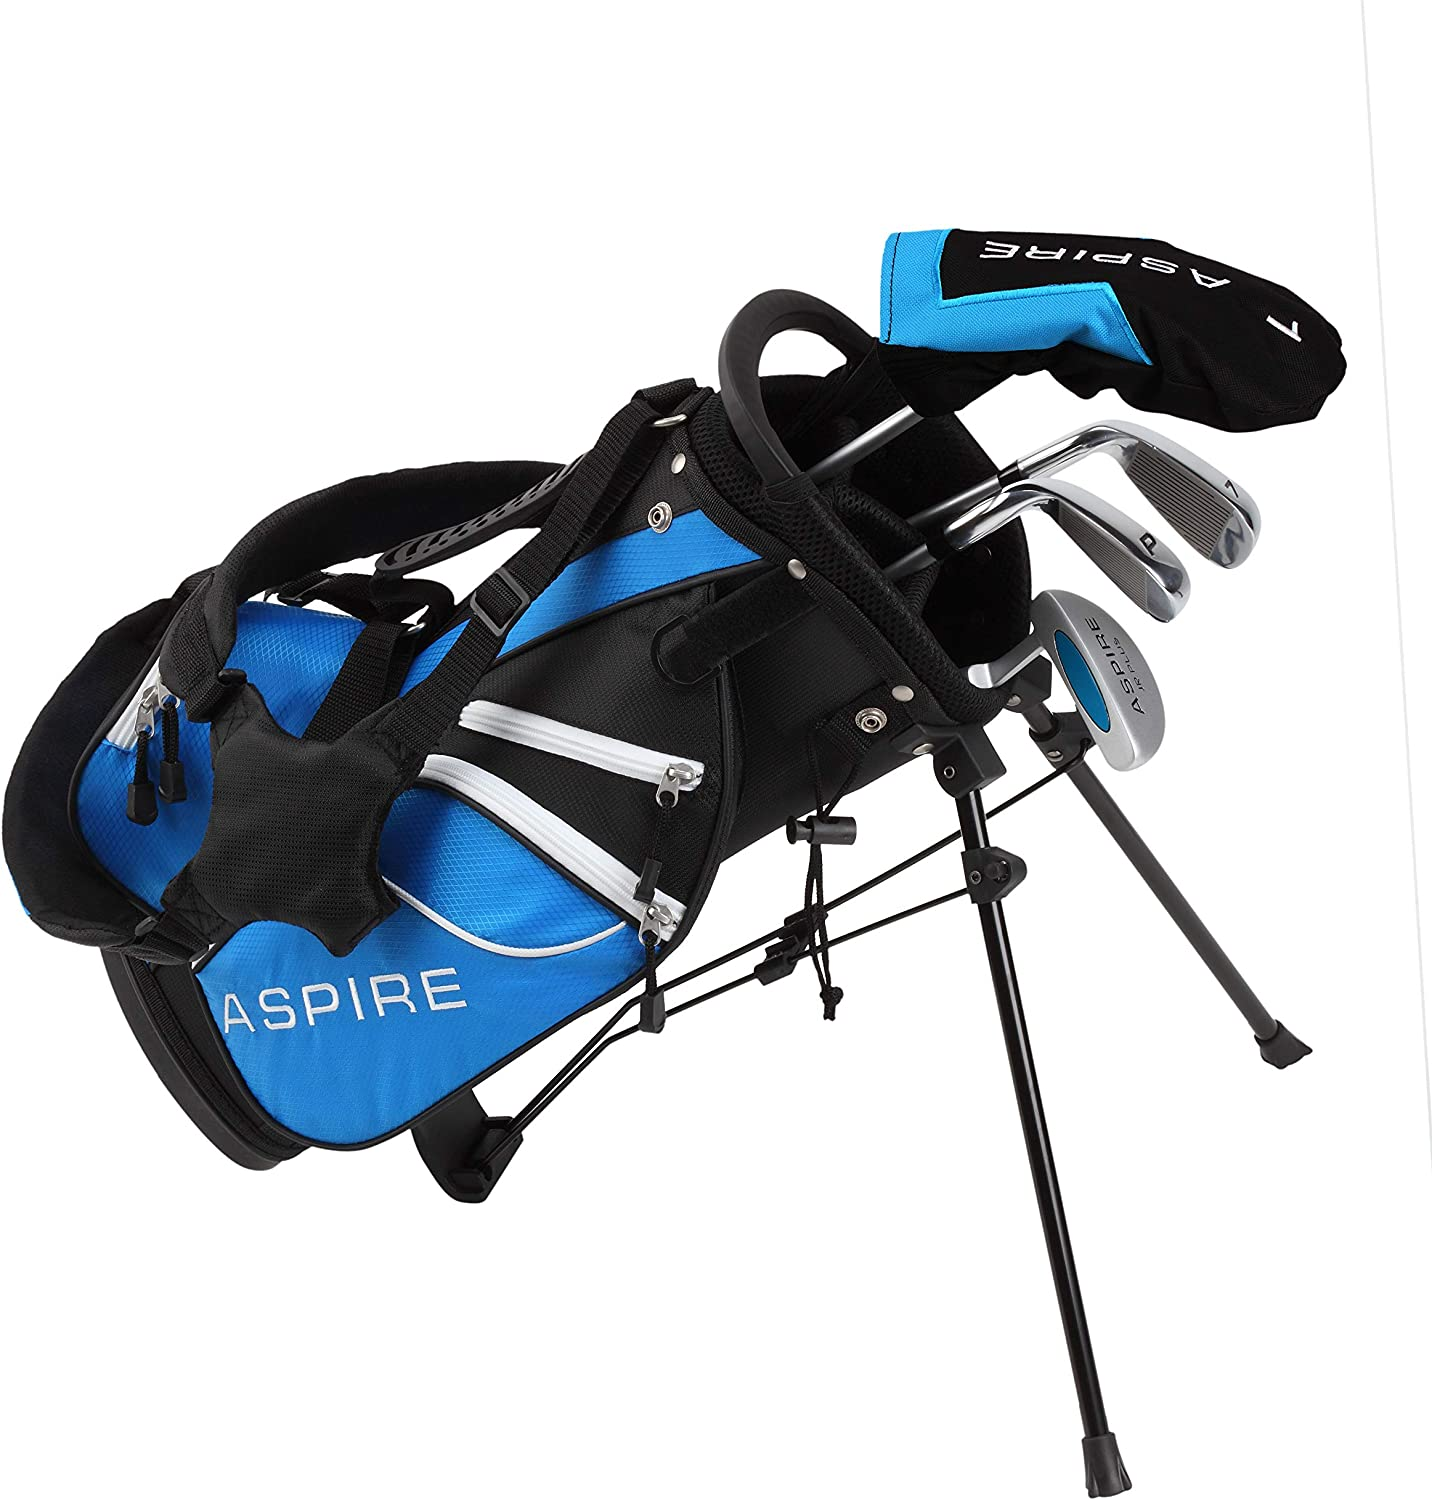 Amazon Com Aspire Junior Plus Complete Golf Club Set For Children Kids 5 Age Groups Boys Girls Right Hand Blue Ages 3 4 Sports Outdoors